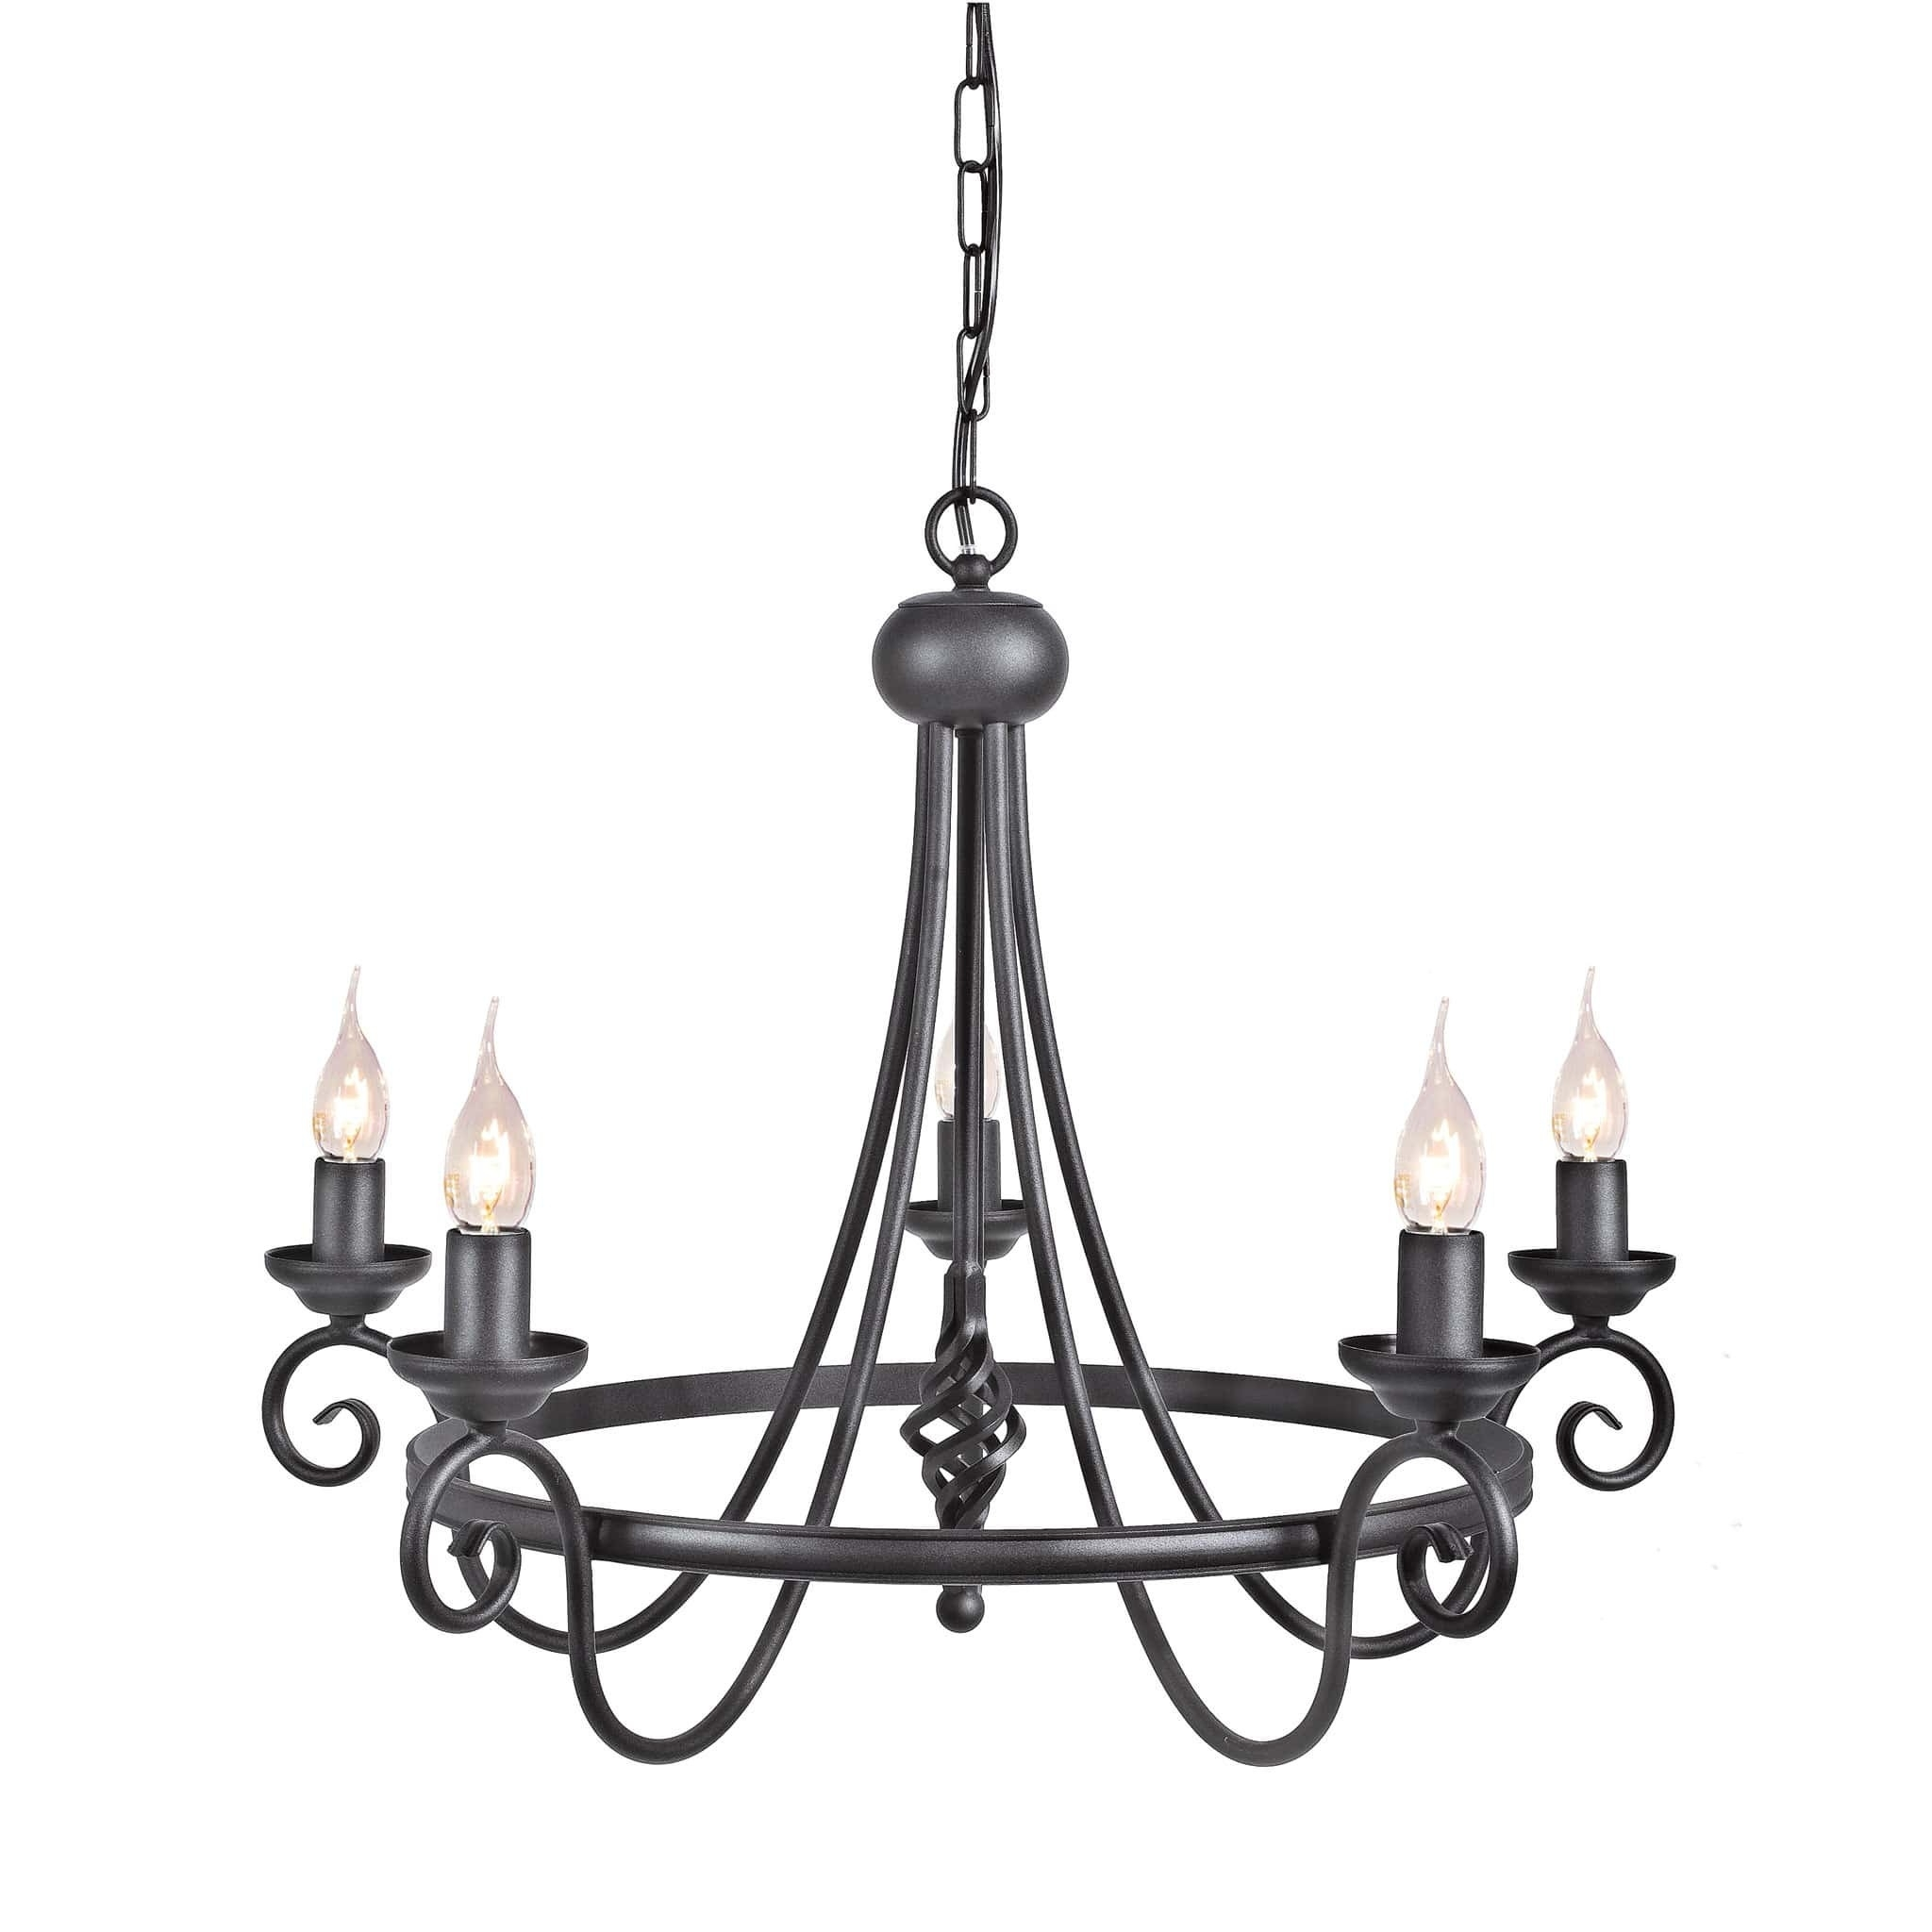 Chandeliers With Black Shades – Chandelier Showroom Intended For Preferred Chandeliers With Black Shades (View 1 of 15)